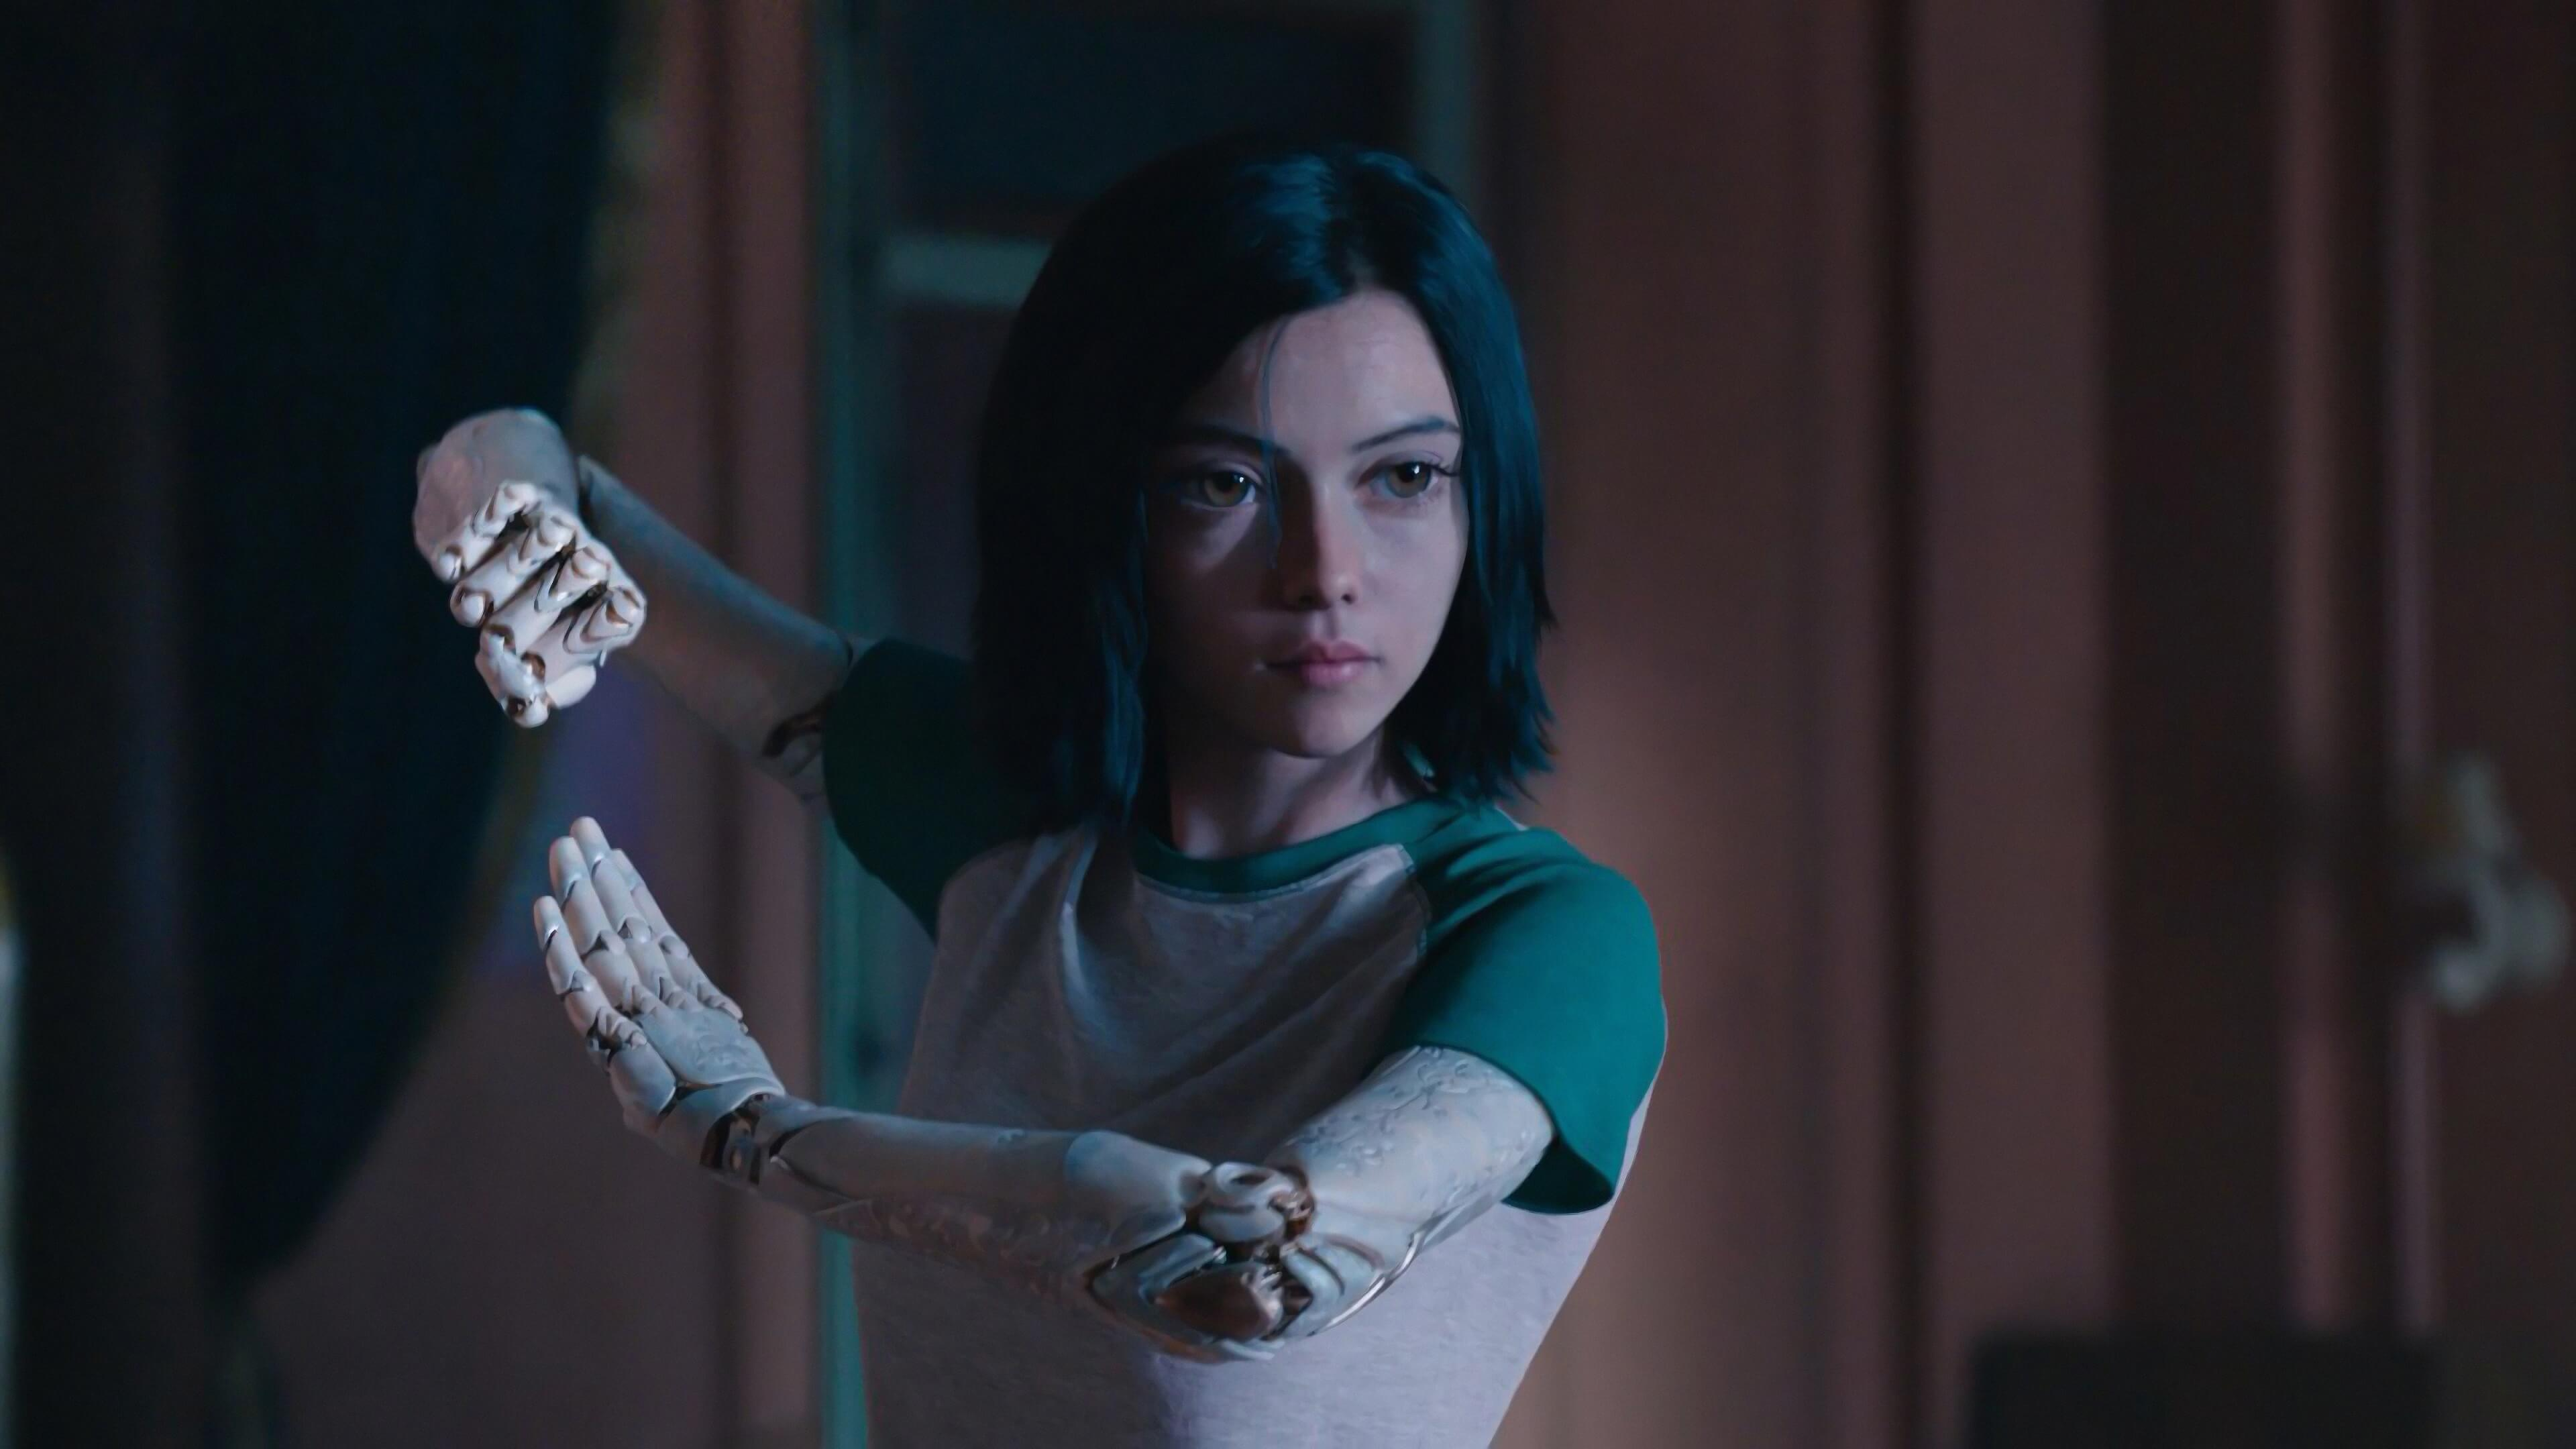 Alita Battle Angel Widescreen Wallpaper 67044 3840x2160px